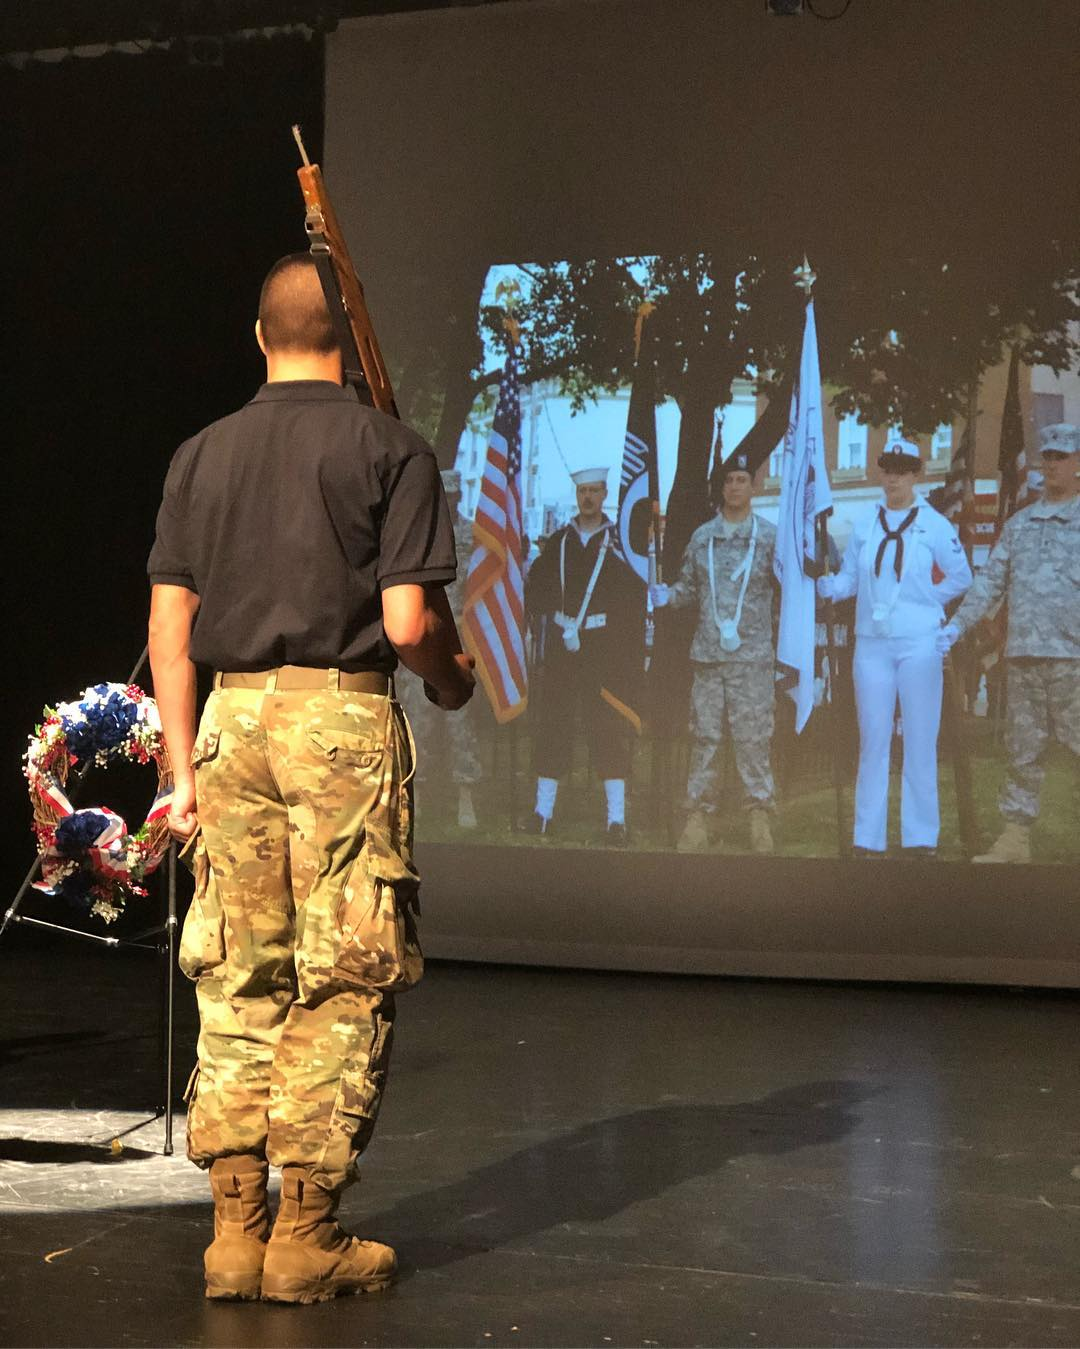 Army color guard soldier looks at photo of other service men and women projected on a large screen